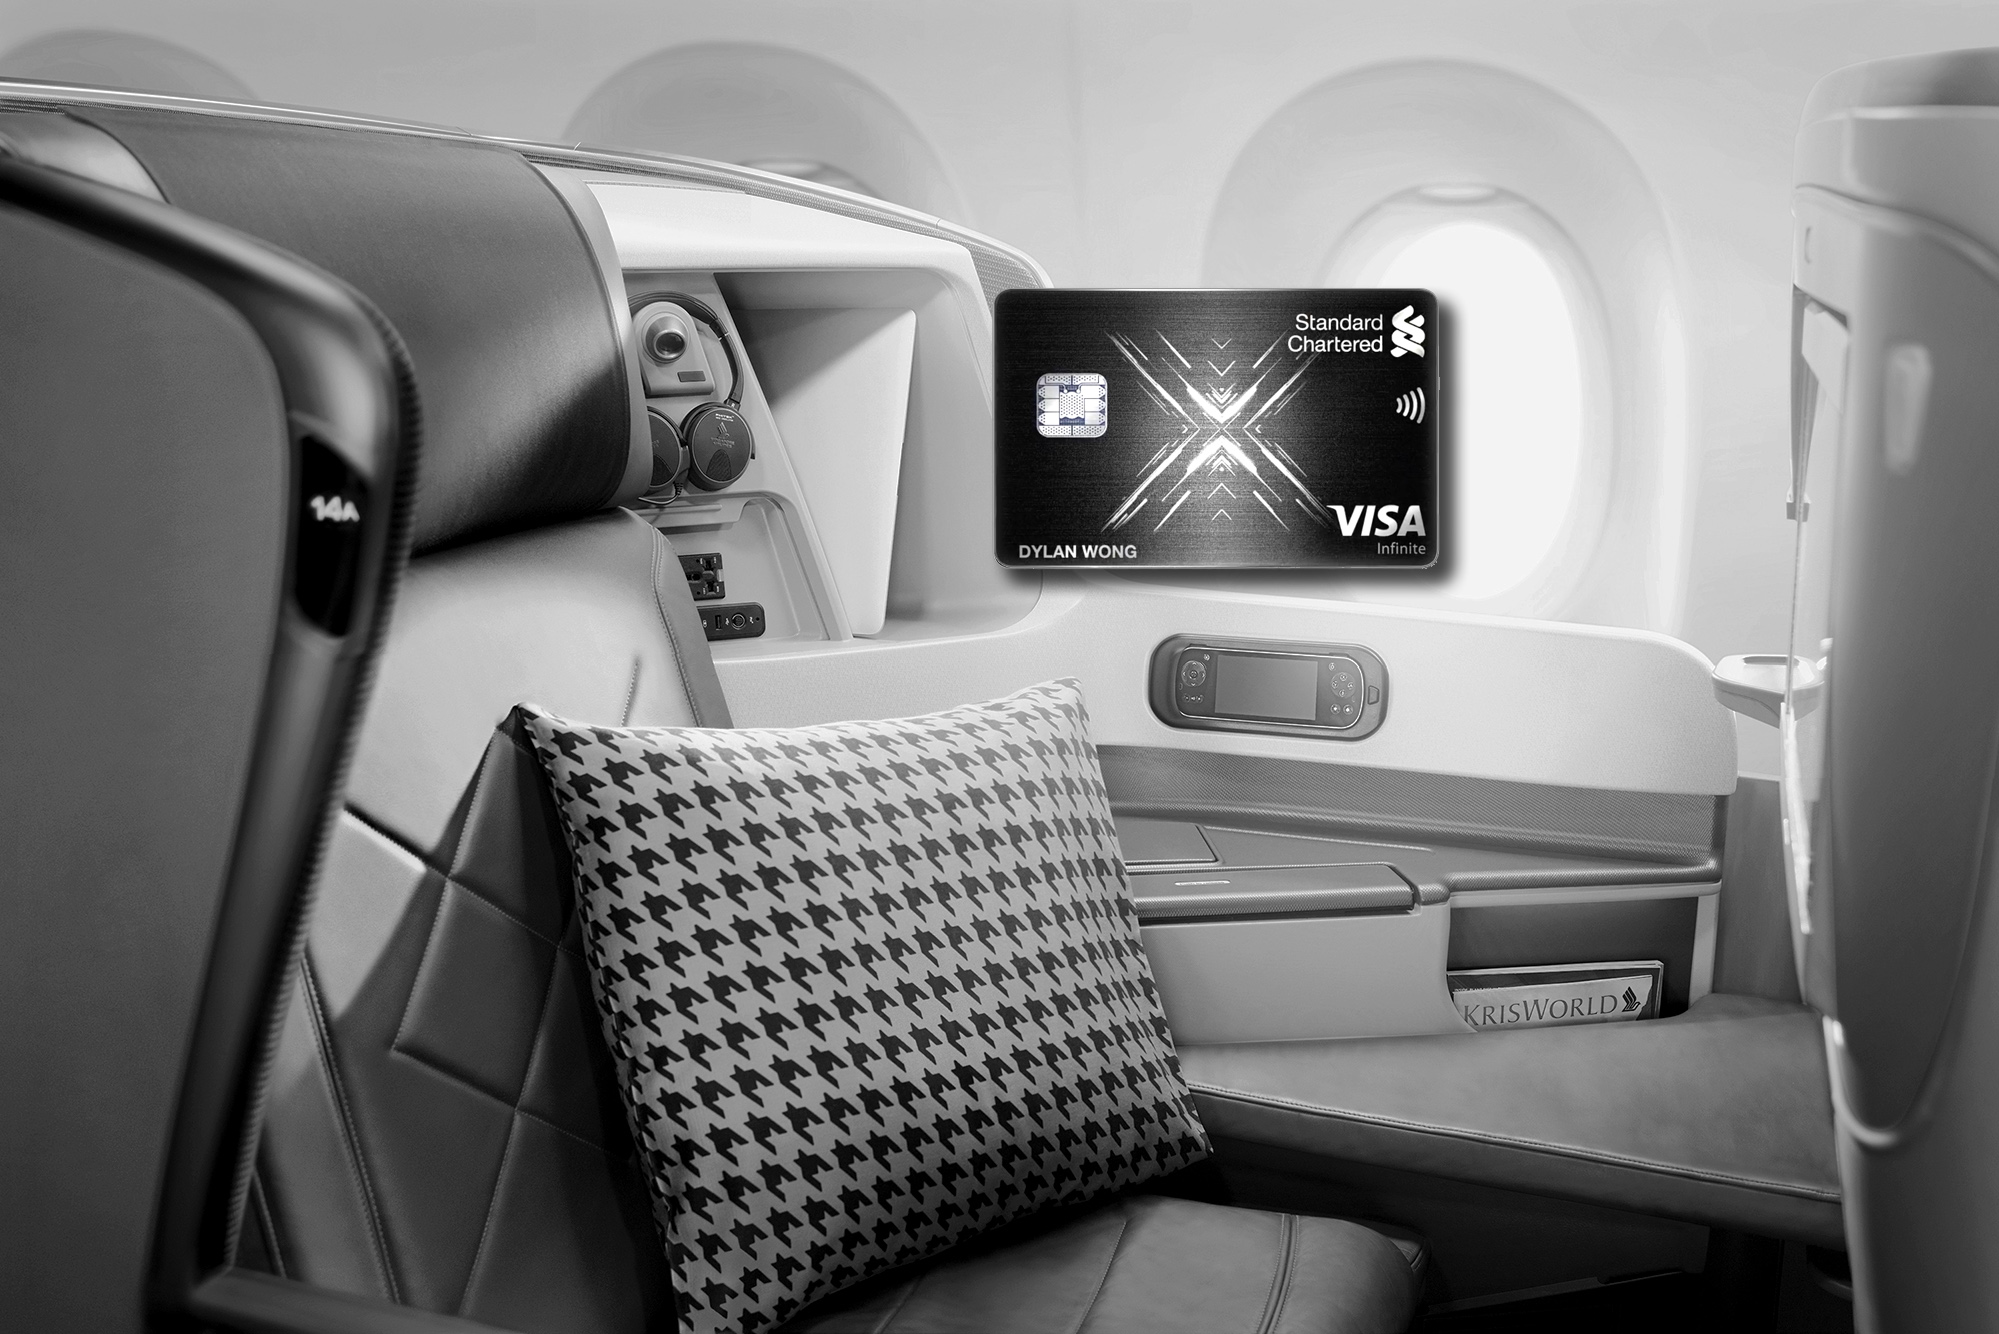 100,000 miles sign-up bonus with the new Standard Chartered X Card